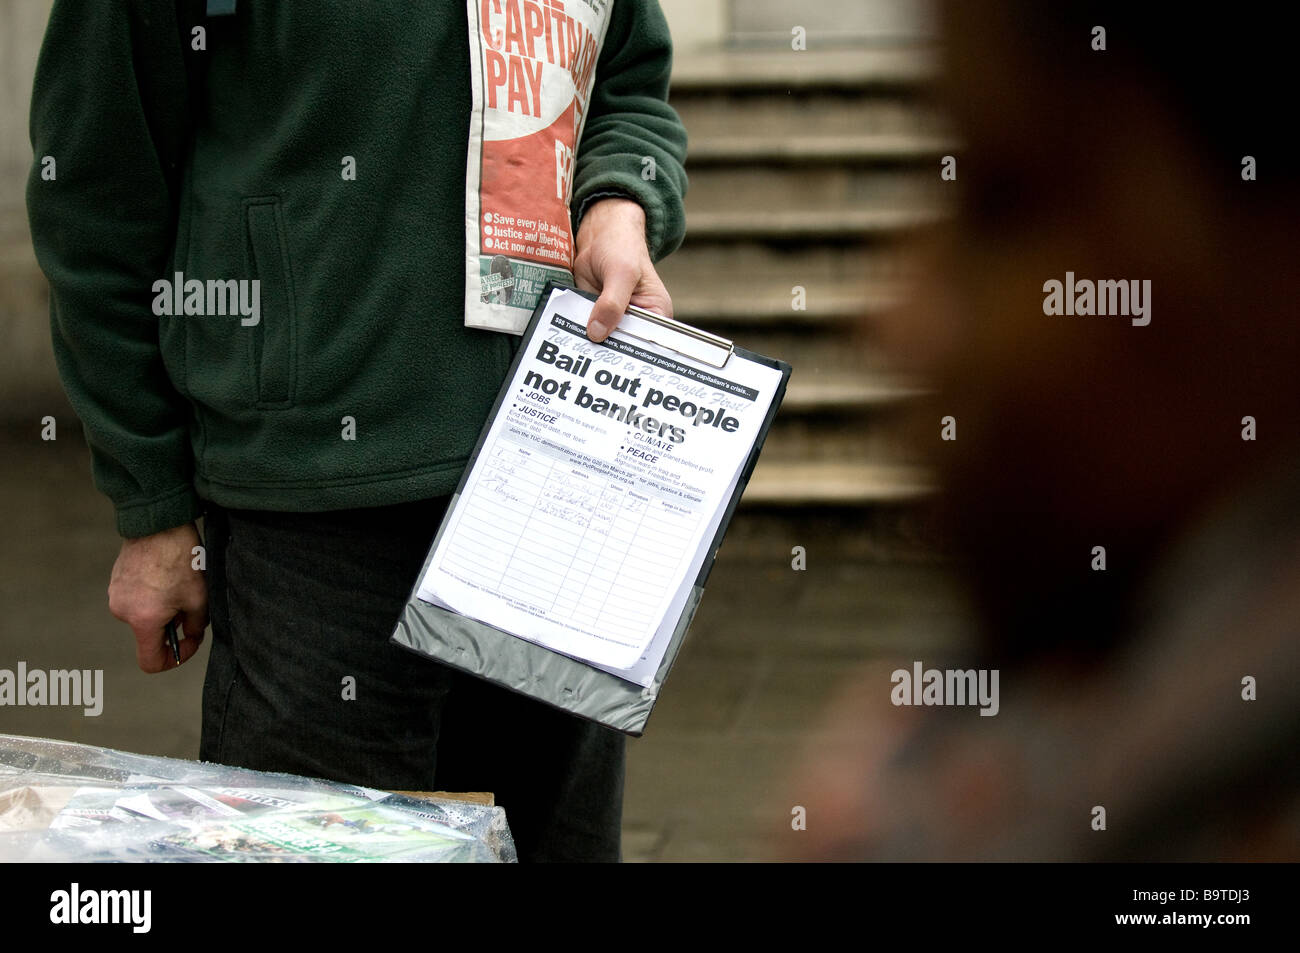 A protester collecting signatures for his petition at a peace demonstration - Stock Image